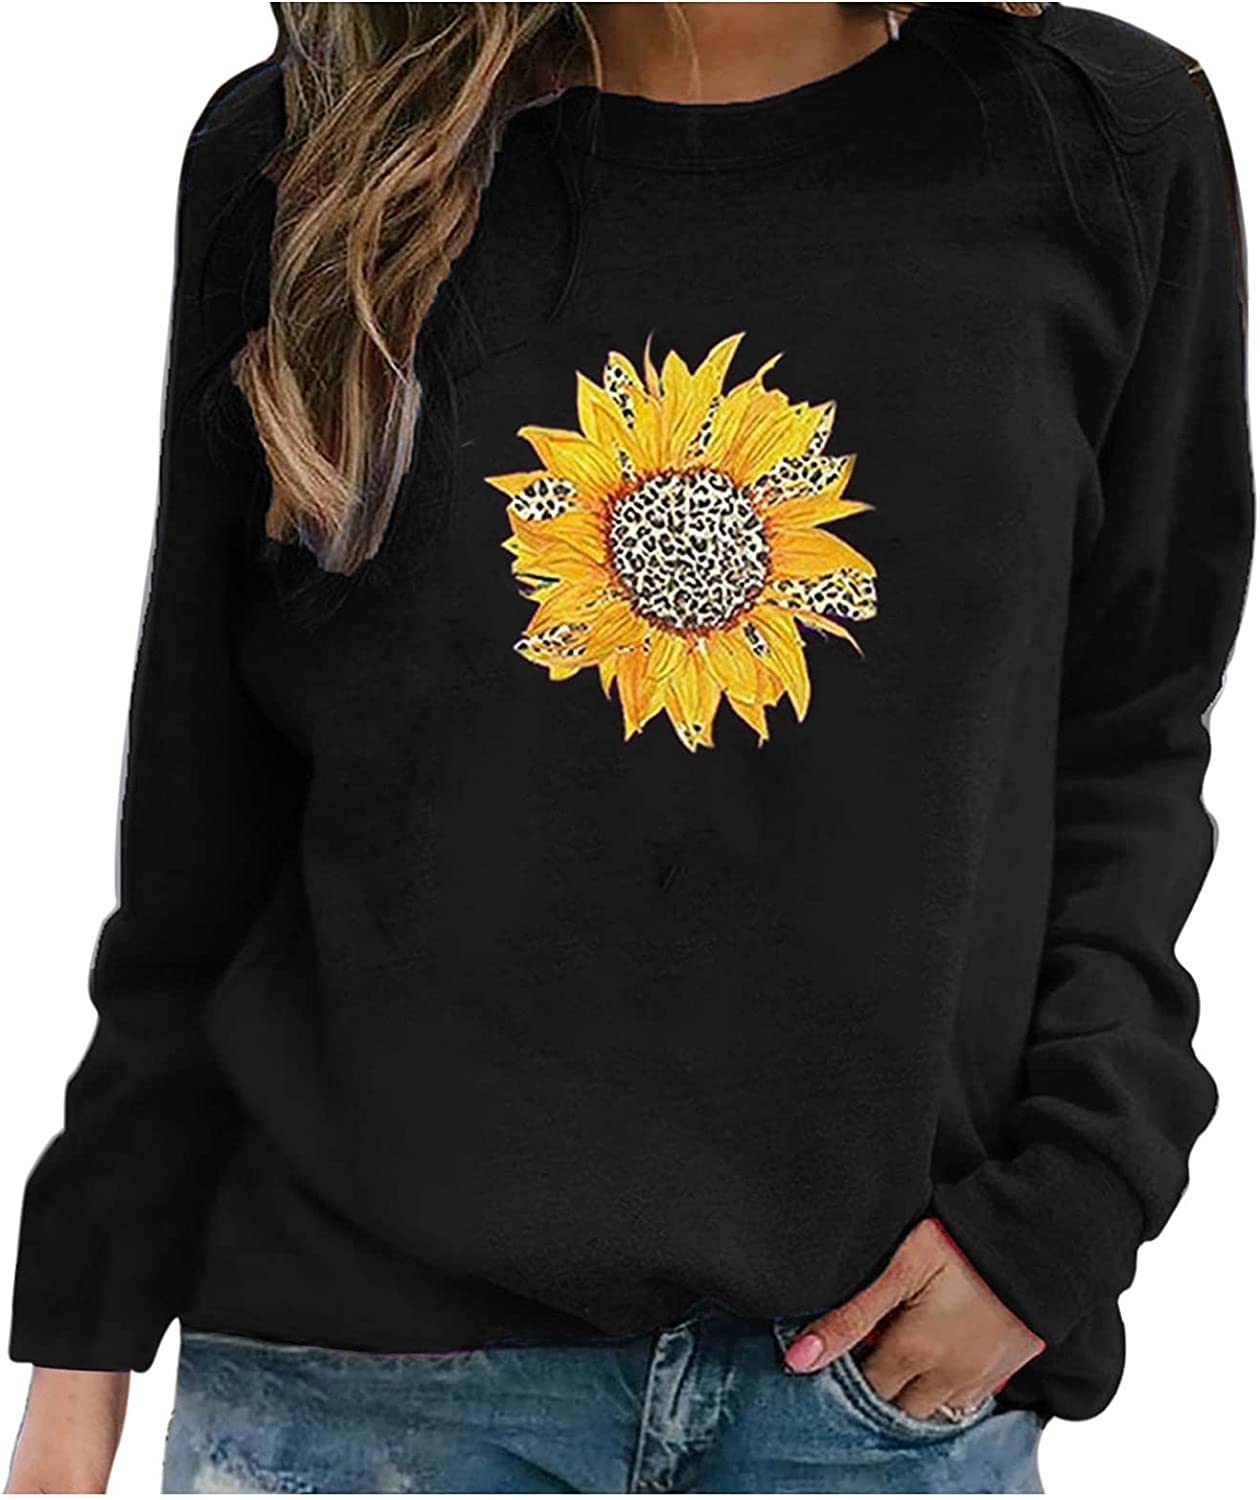 Hotkey Sweatshirts for Women Round Neck Long Sleeve Tops Leopard Sunflower Print Pullover Sweatshirt Casual Loose Top Blouses